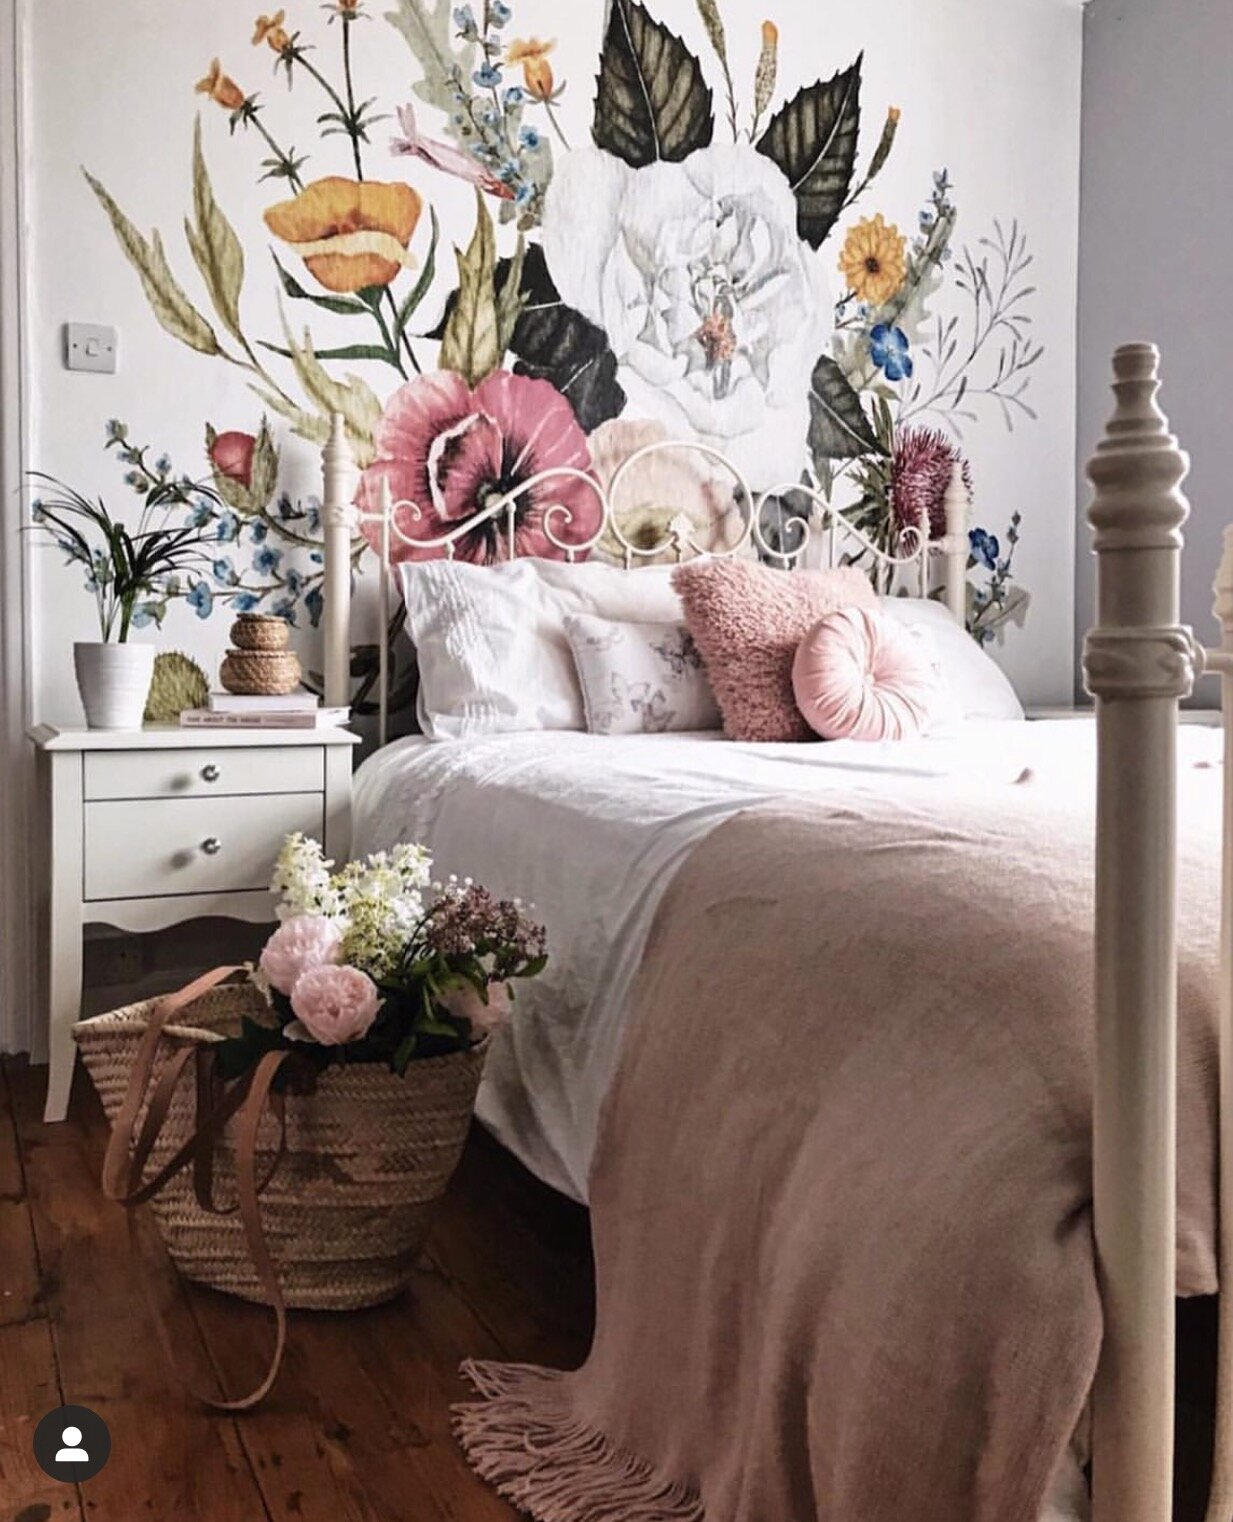 The beautiful wallpaper by  Anewall  and introducing more pink into the room. Notice the walls around it are still grey!